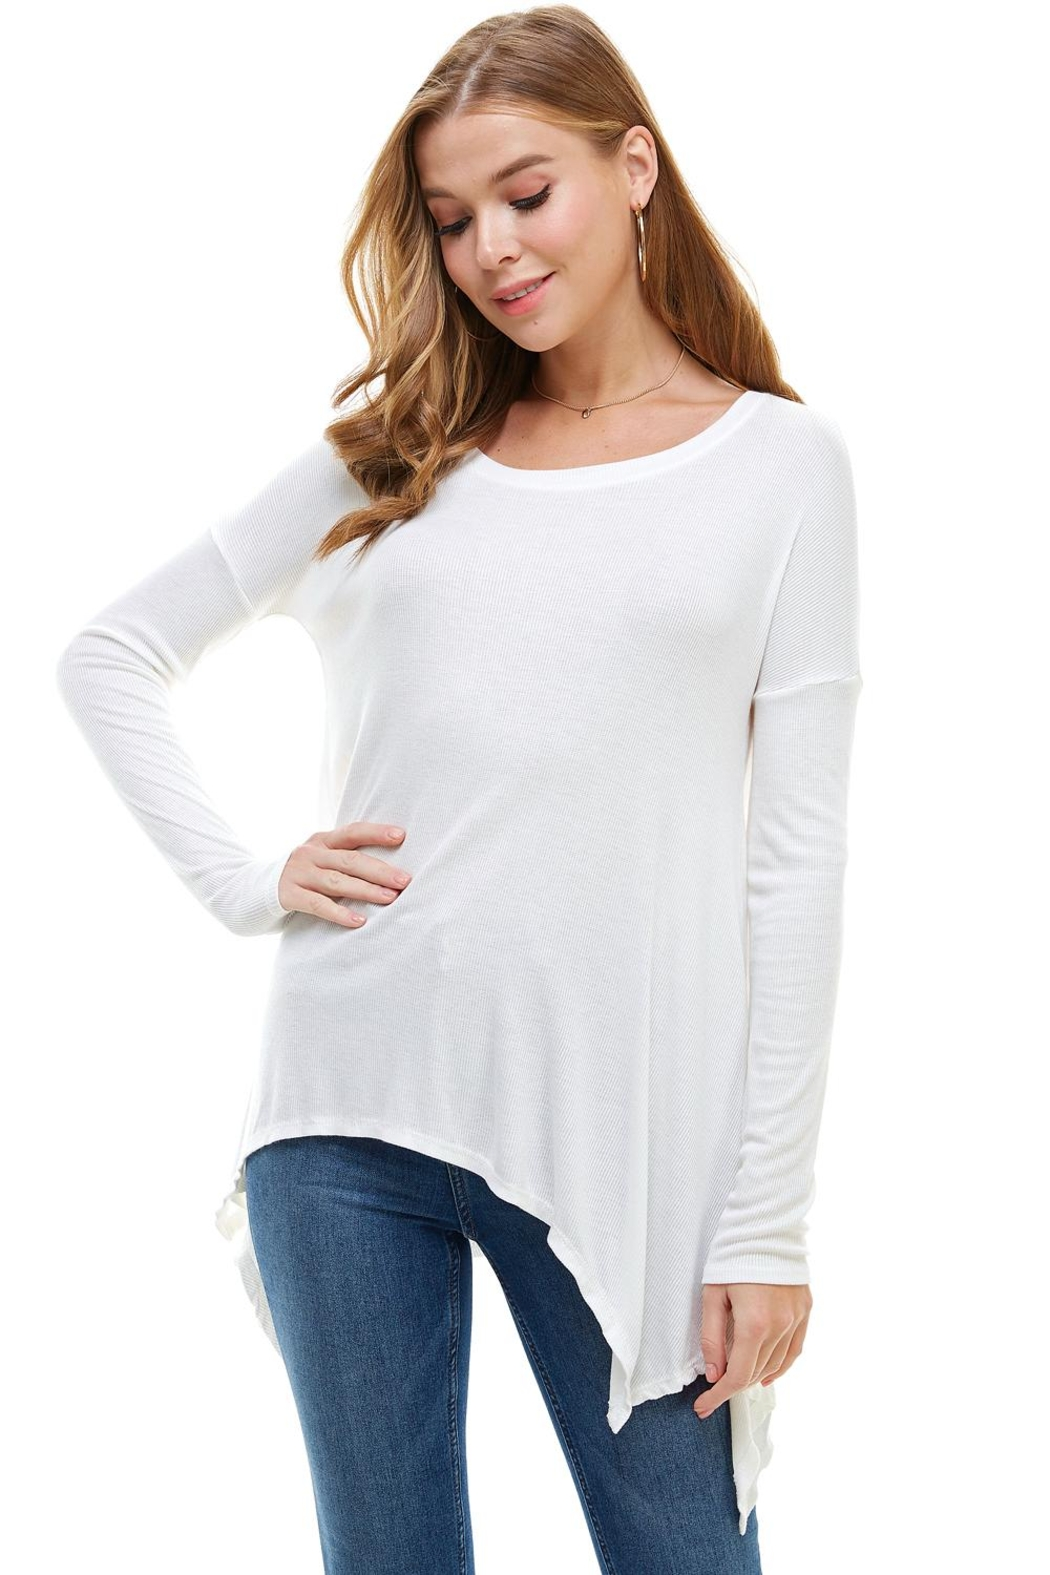 Miley and Molly Everyday Favorite Ribbed Knit Top - Main Image